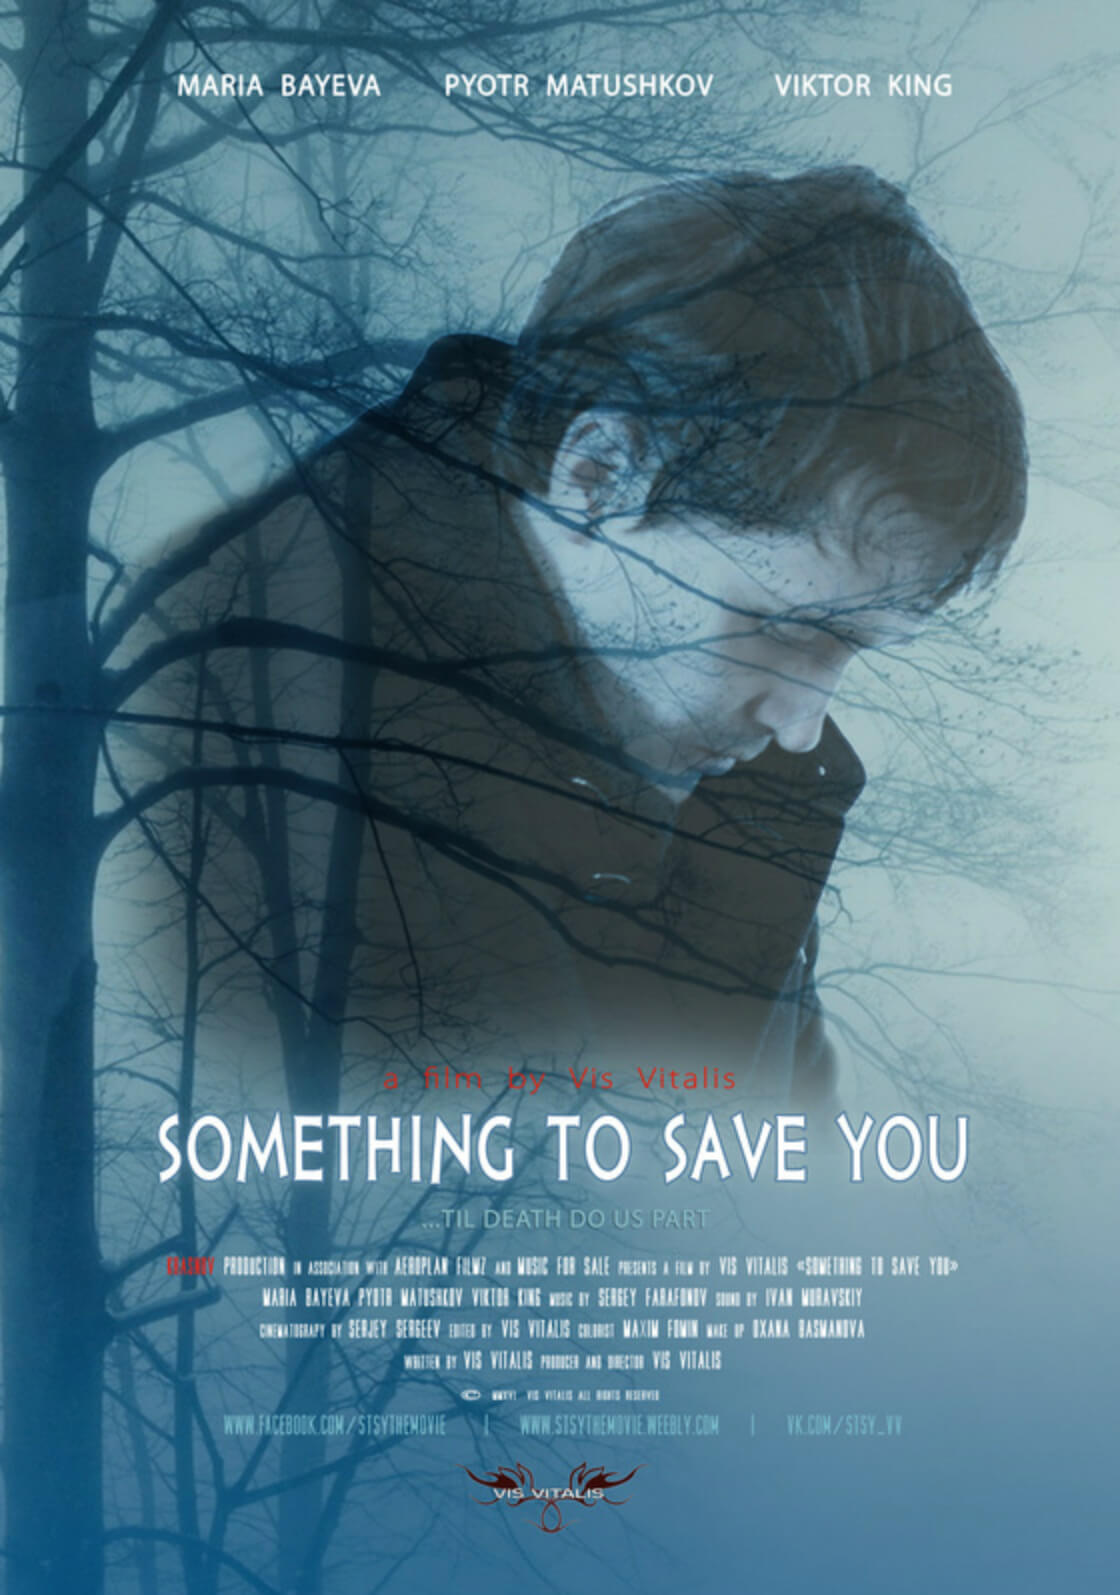 Something To Save Youposter2.jpg 1 - Exclusive Interview with Vis Vitalis - Director of Something to Save You